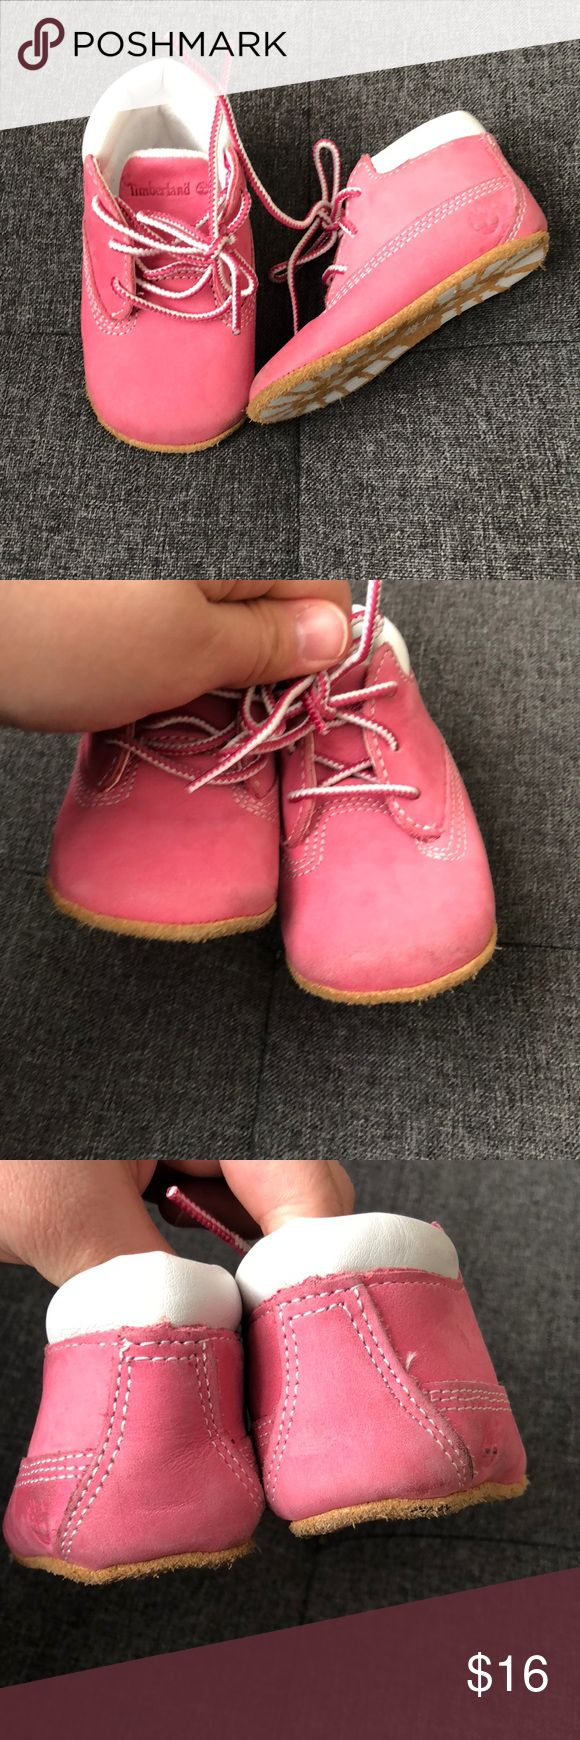 Timberland pink leather lace up boots sz 2 baby Baby girl pink lace up leather timberland boots. They do show wear from regular wear. Size 2. Timberland Shoes Boots